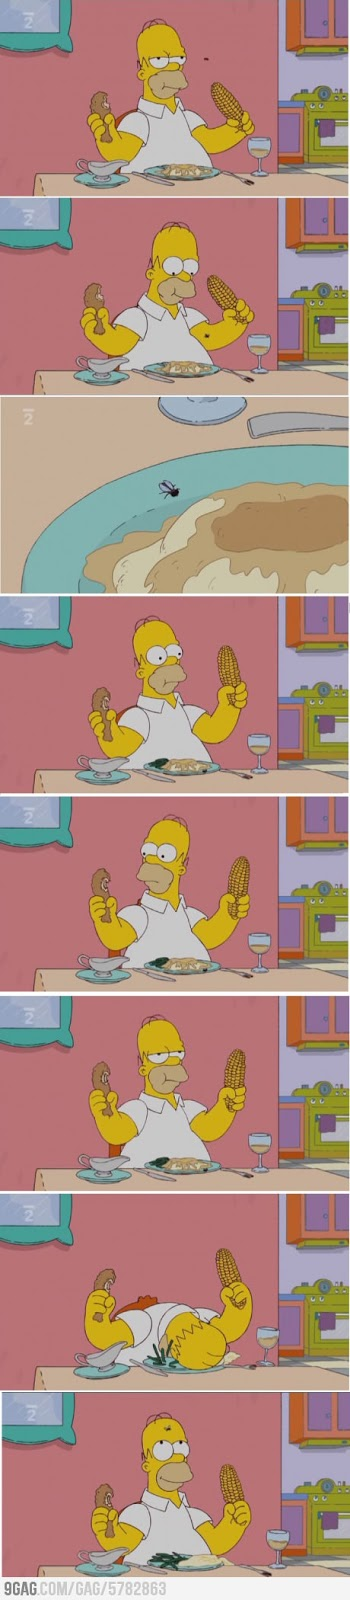 Just Homer Being Homer